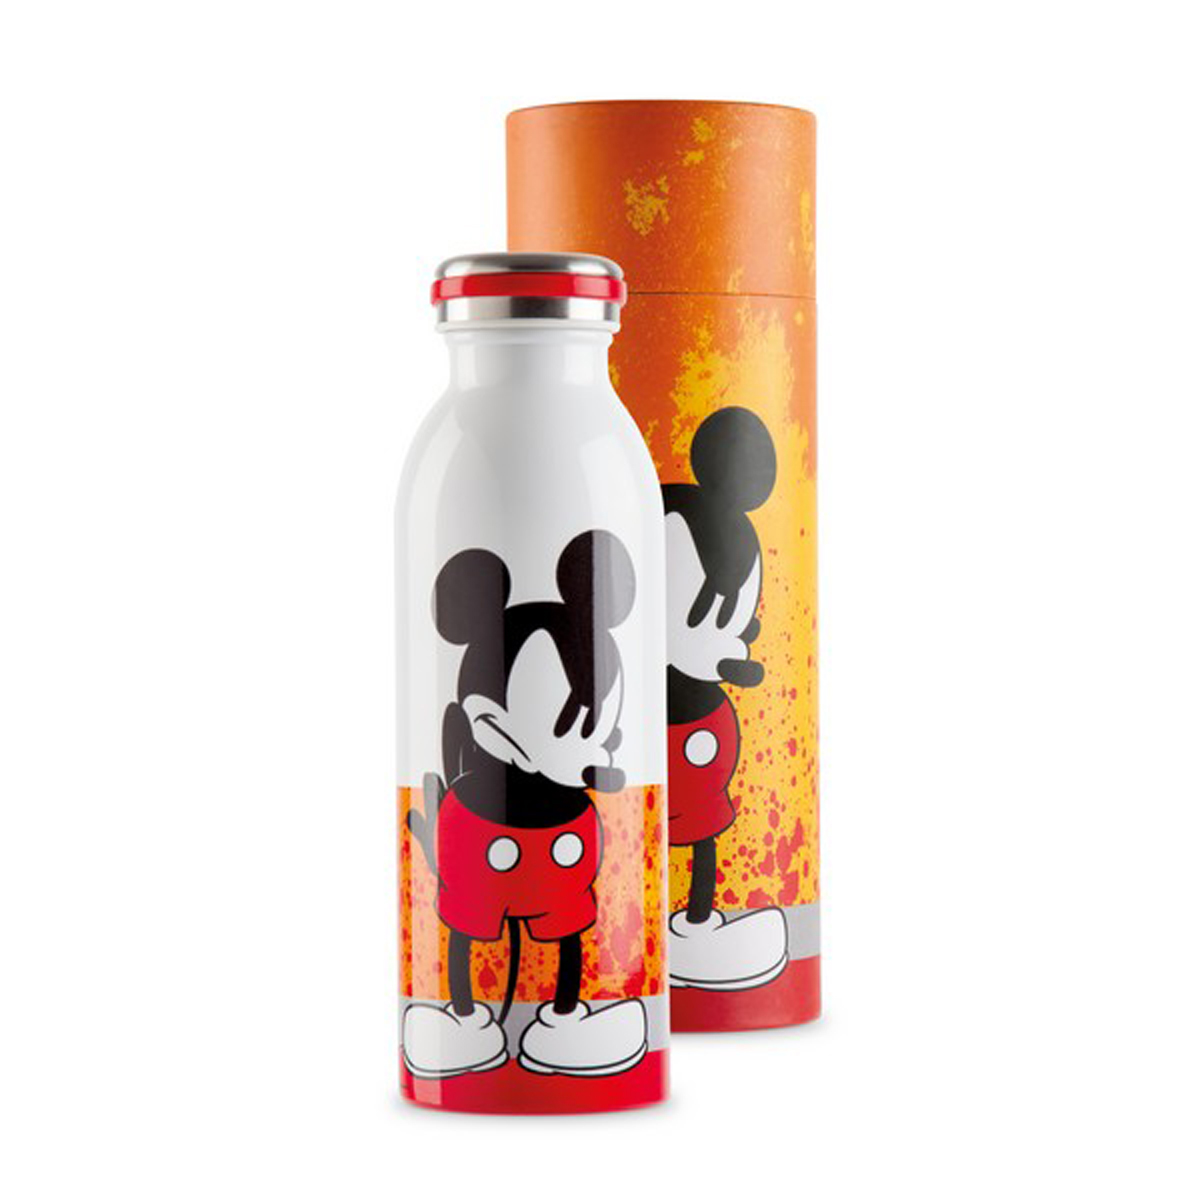 Bouteille isotherme \'Mickey\' orange - 21x7 cm (500 ml) - [A2947]